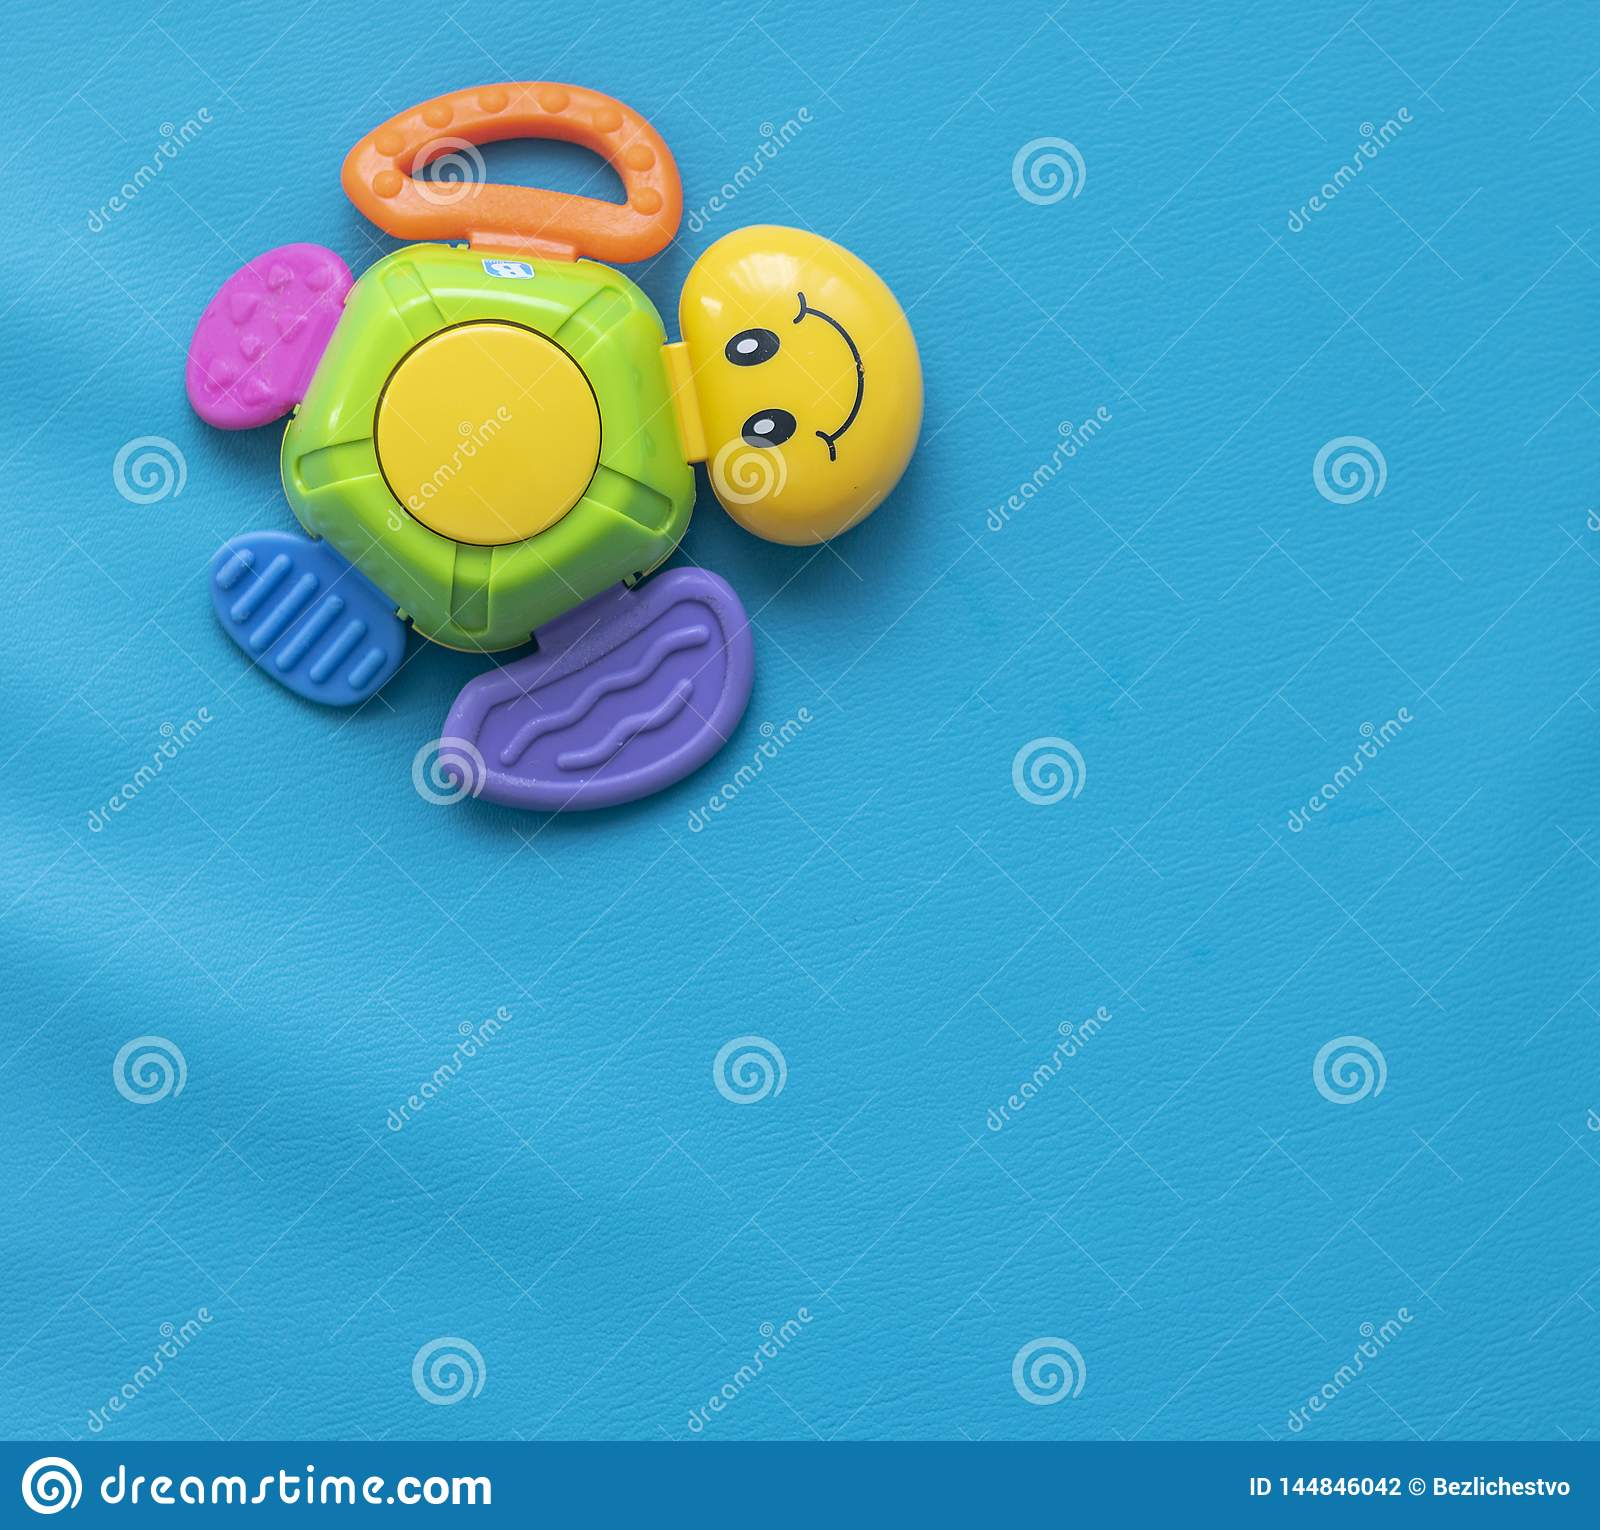 One multi-colored toy turtle with a smile on a blue background to the left